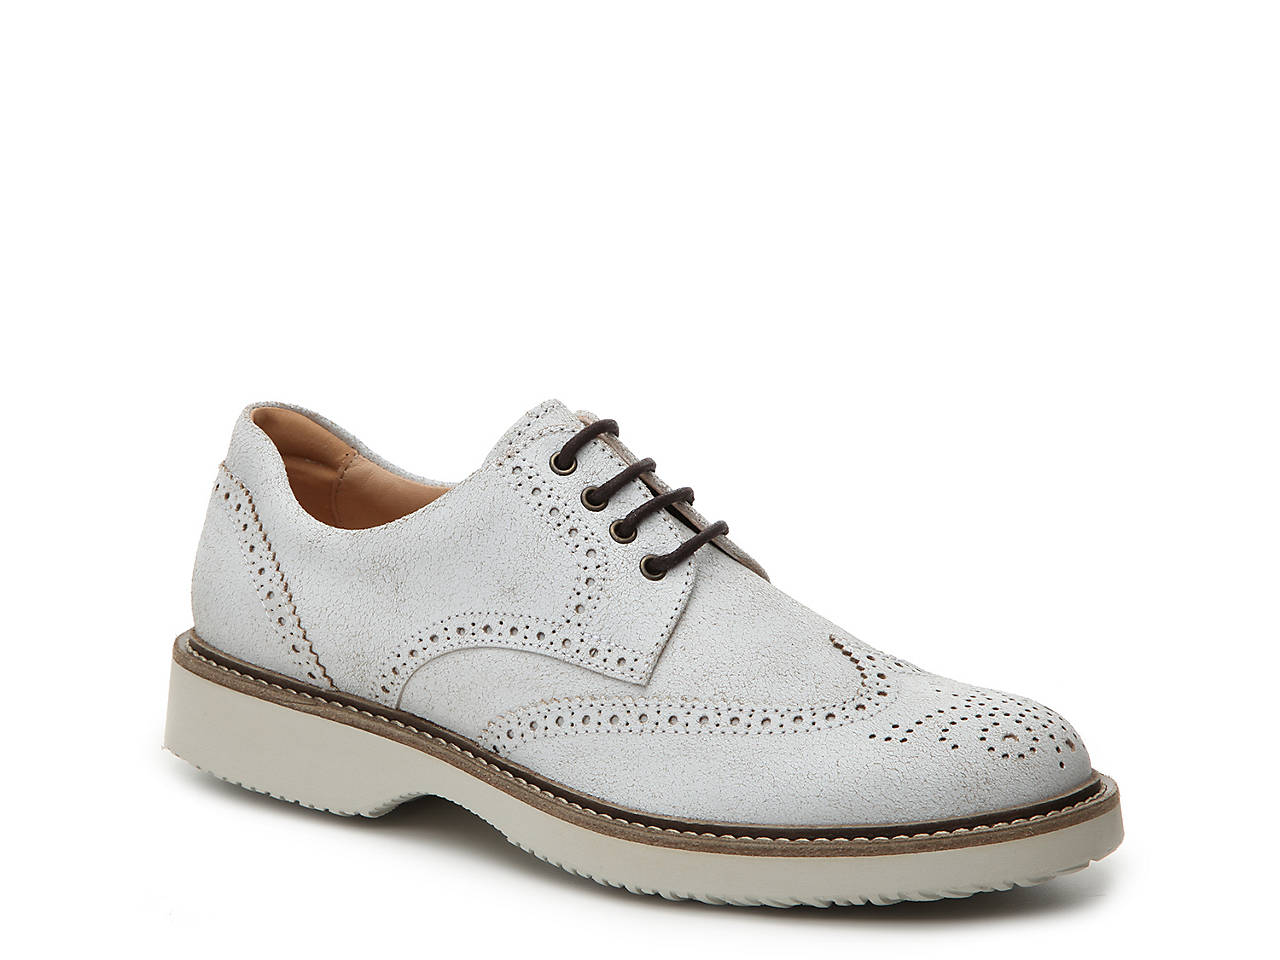 b6b92503b2c4a Hogan Distressed Leather Wingtip Oxford Men s Shoes